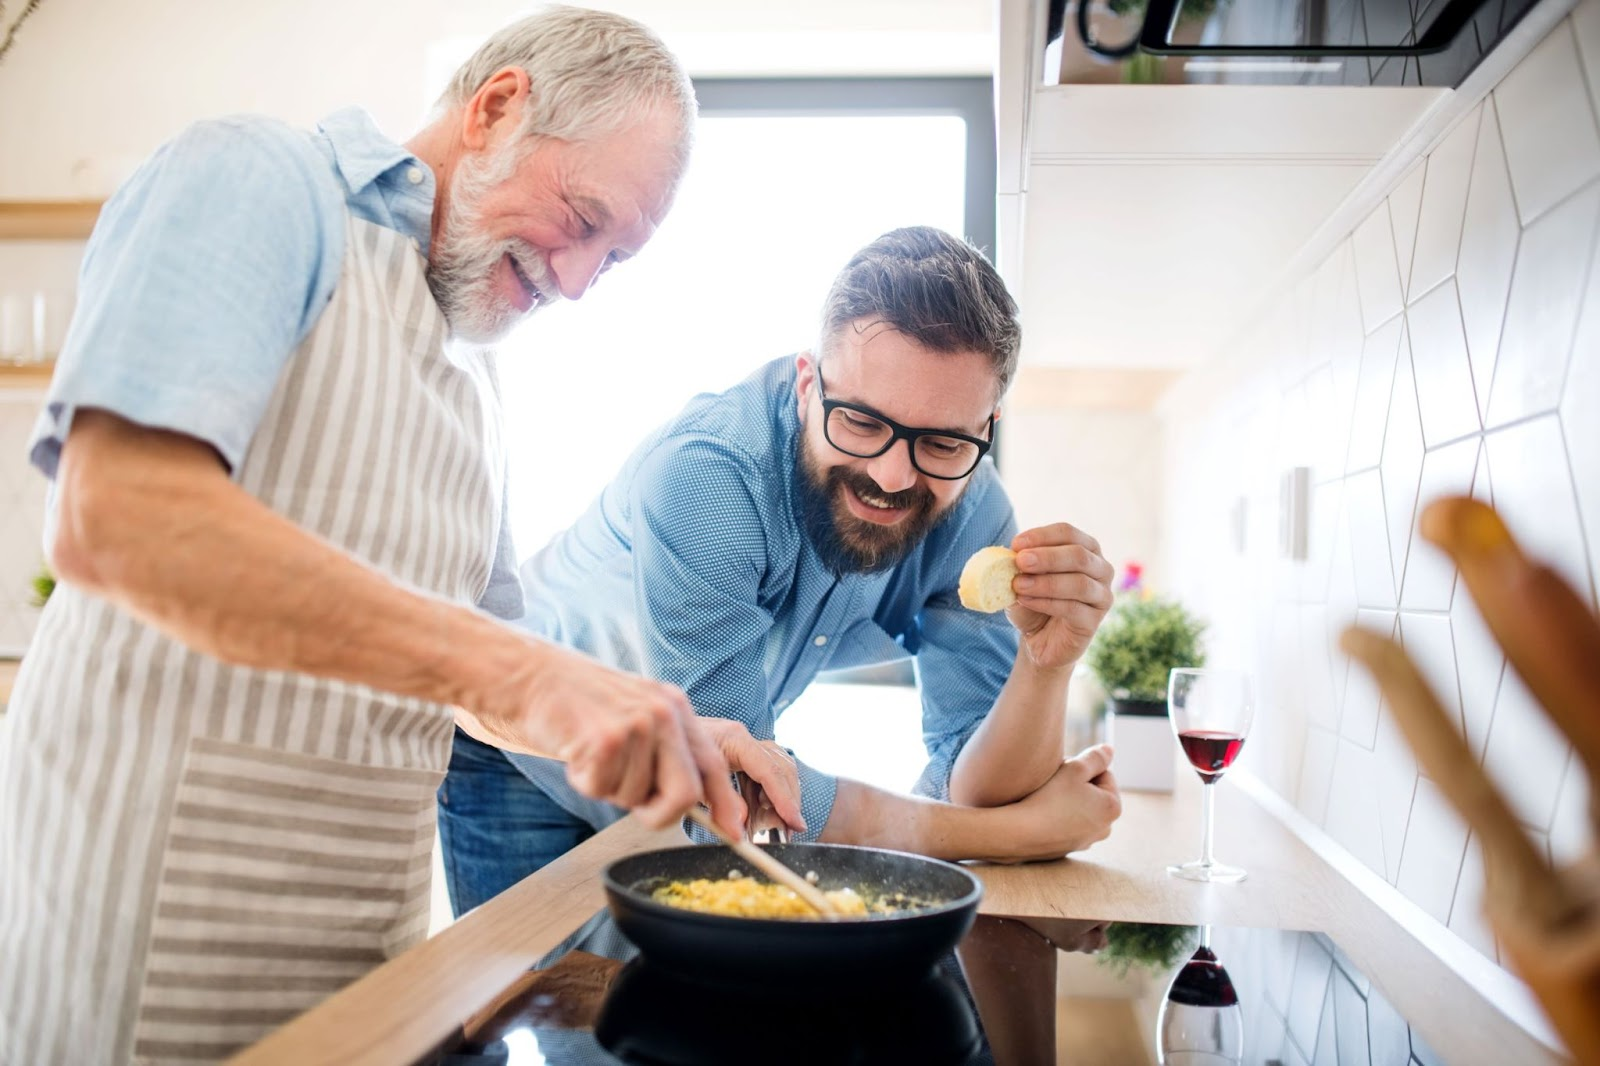 senior-father-cooking-with-adult-son